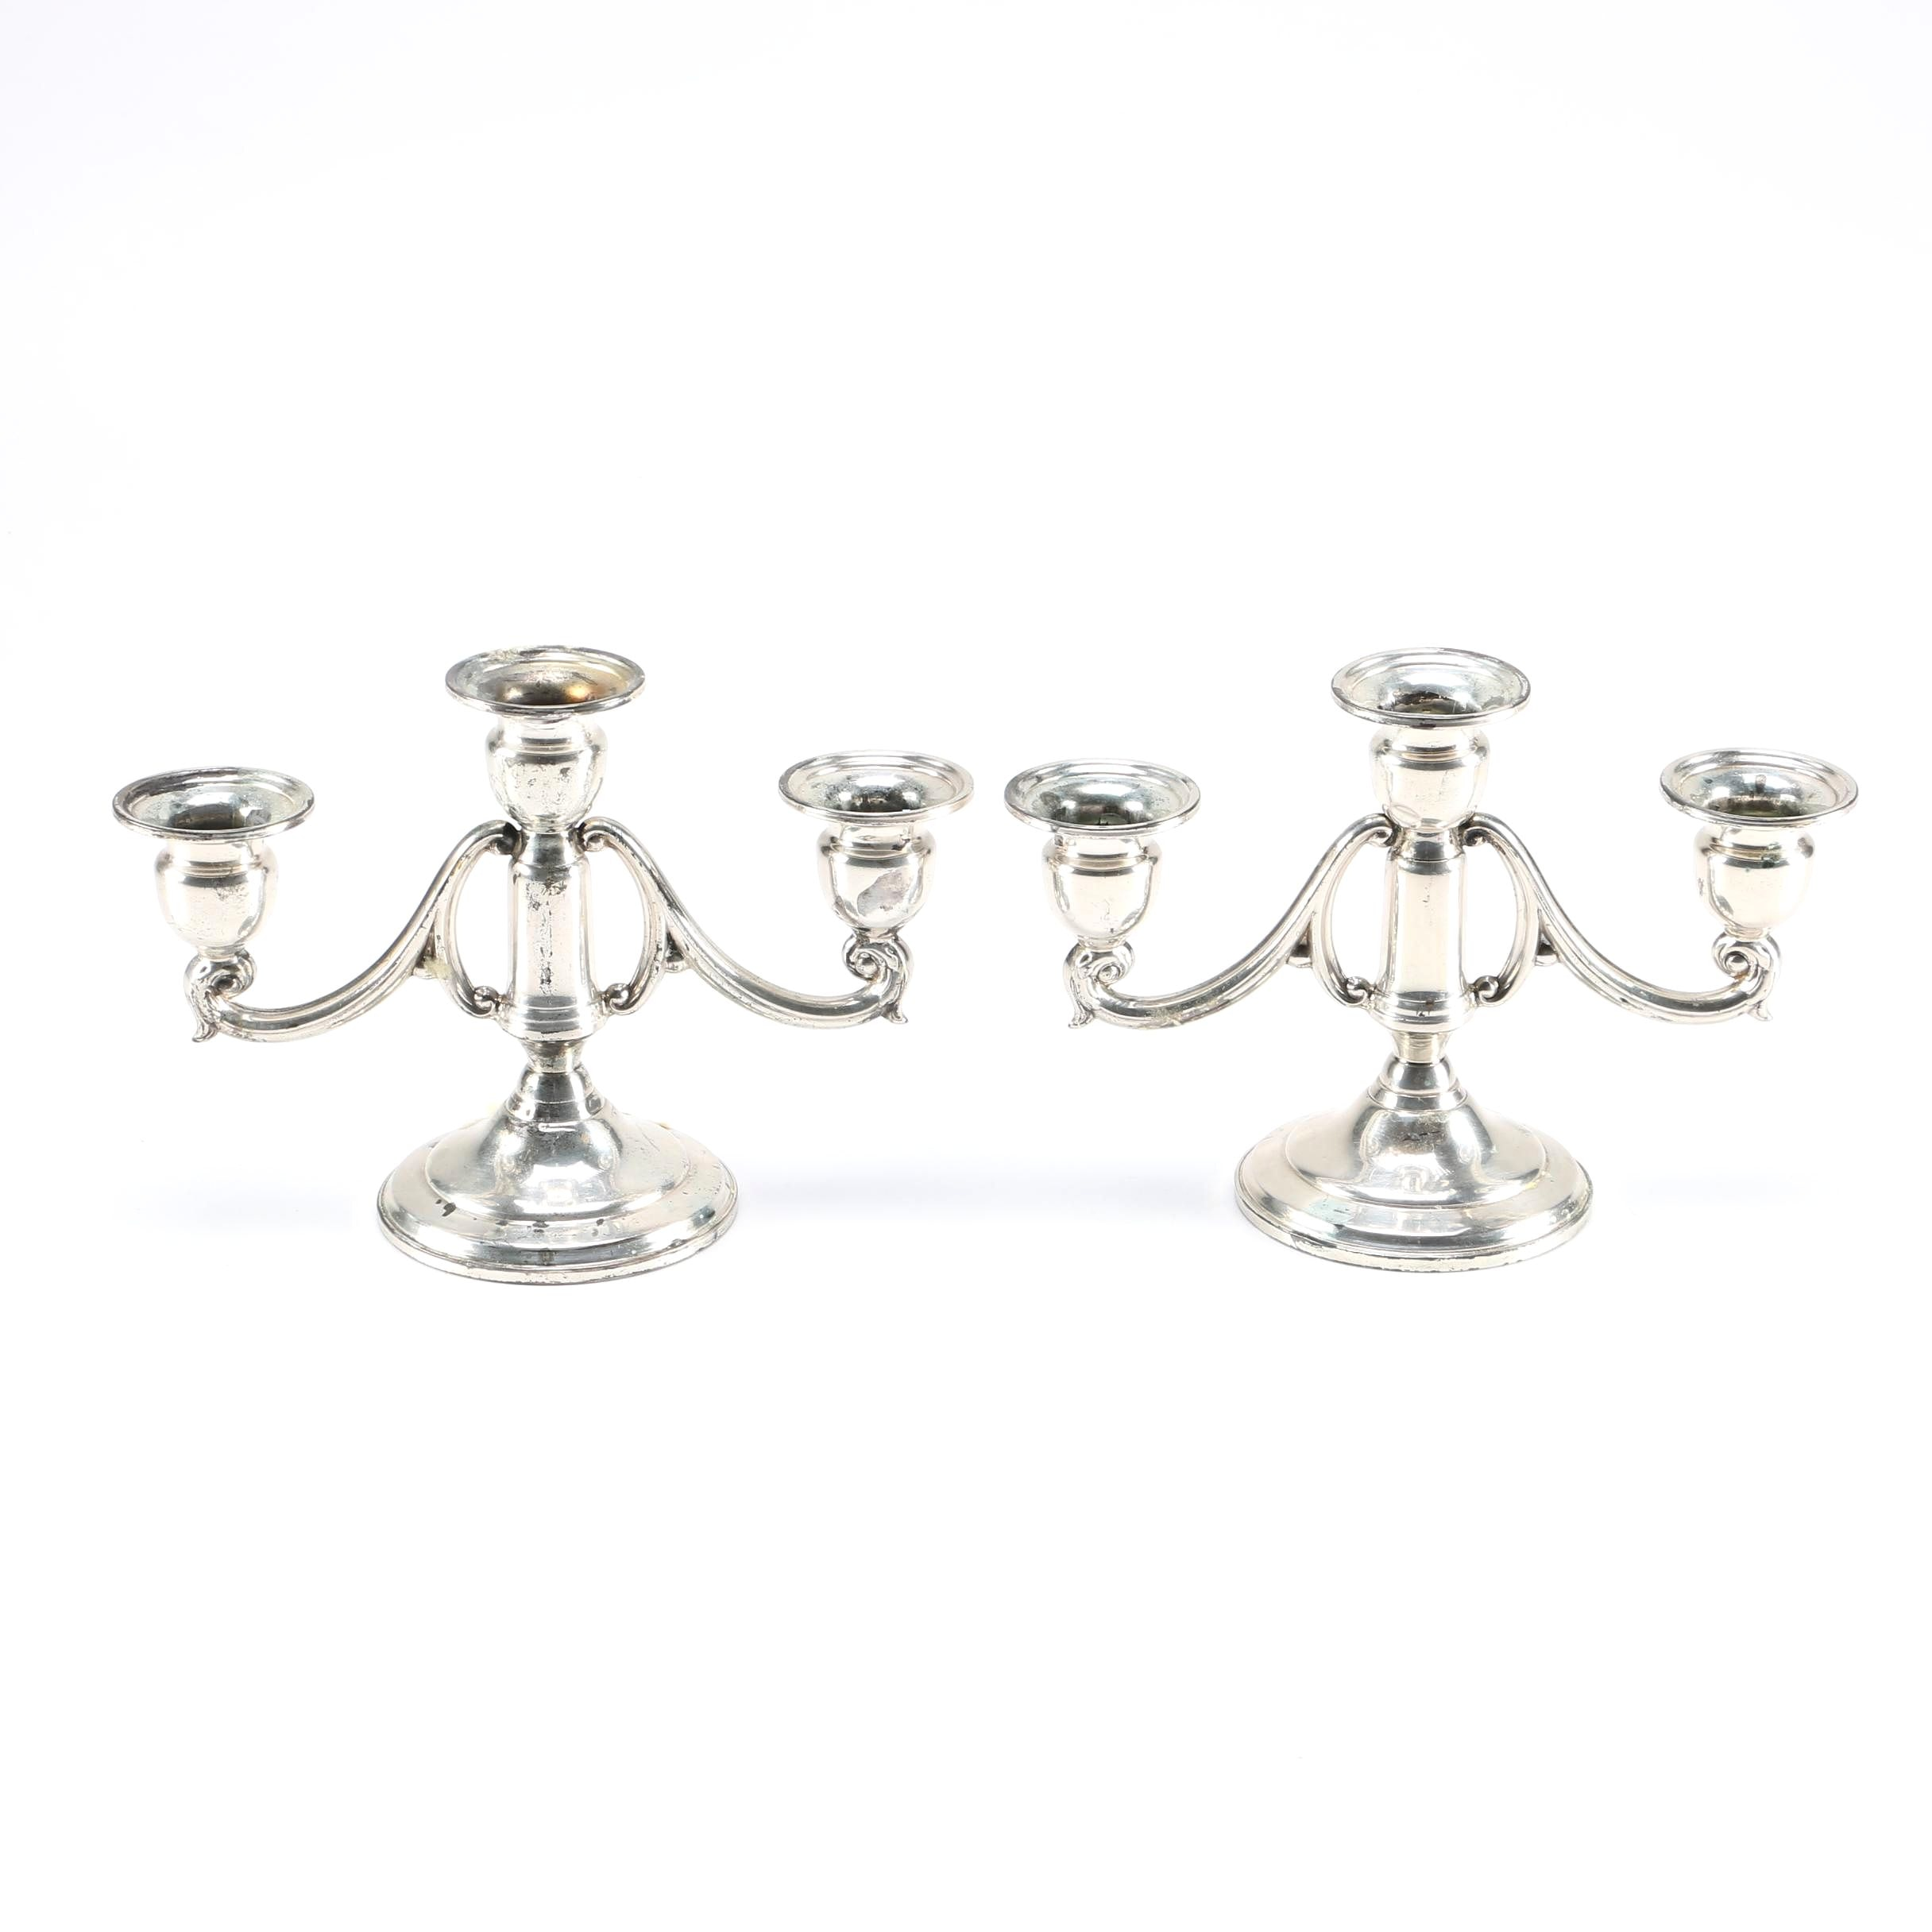 Mueck - Cary Co. Weighted Sterling Silver Candelabra